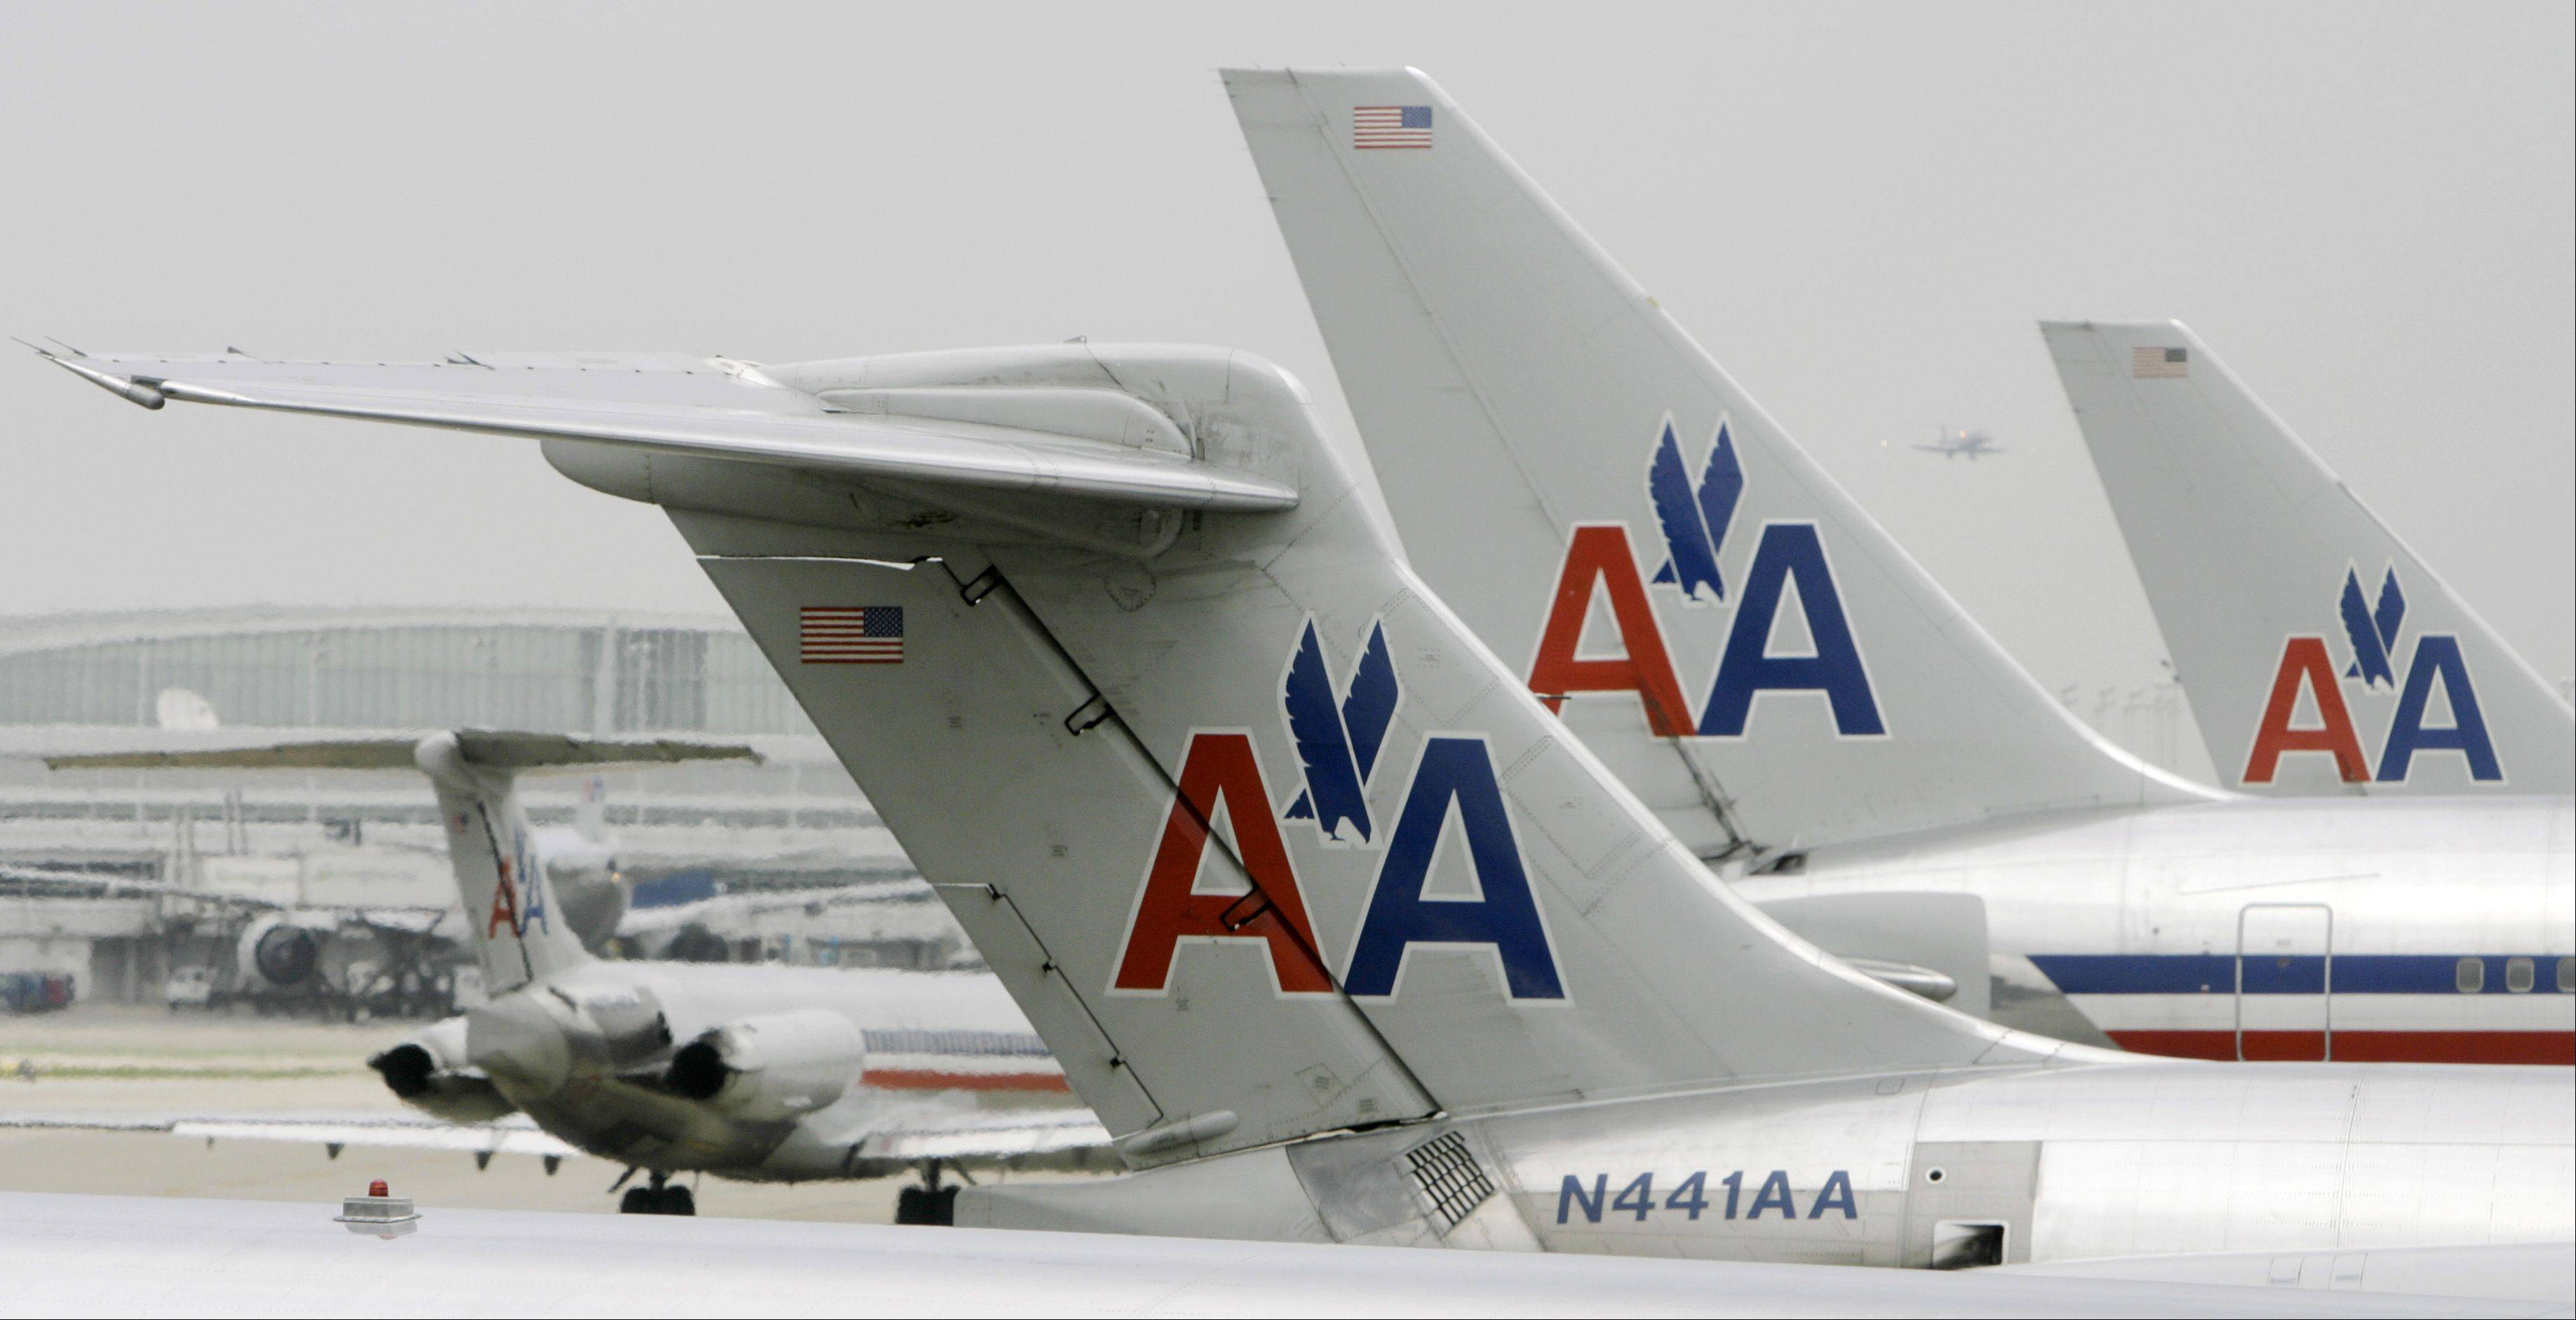 Creditors overwhelmingly approved the bankruptcy reorganization plan for American Airlines parent AMR Corp., which includes a merger with US Airways that would create the world's biggest airline.